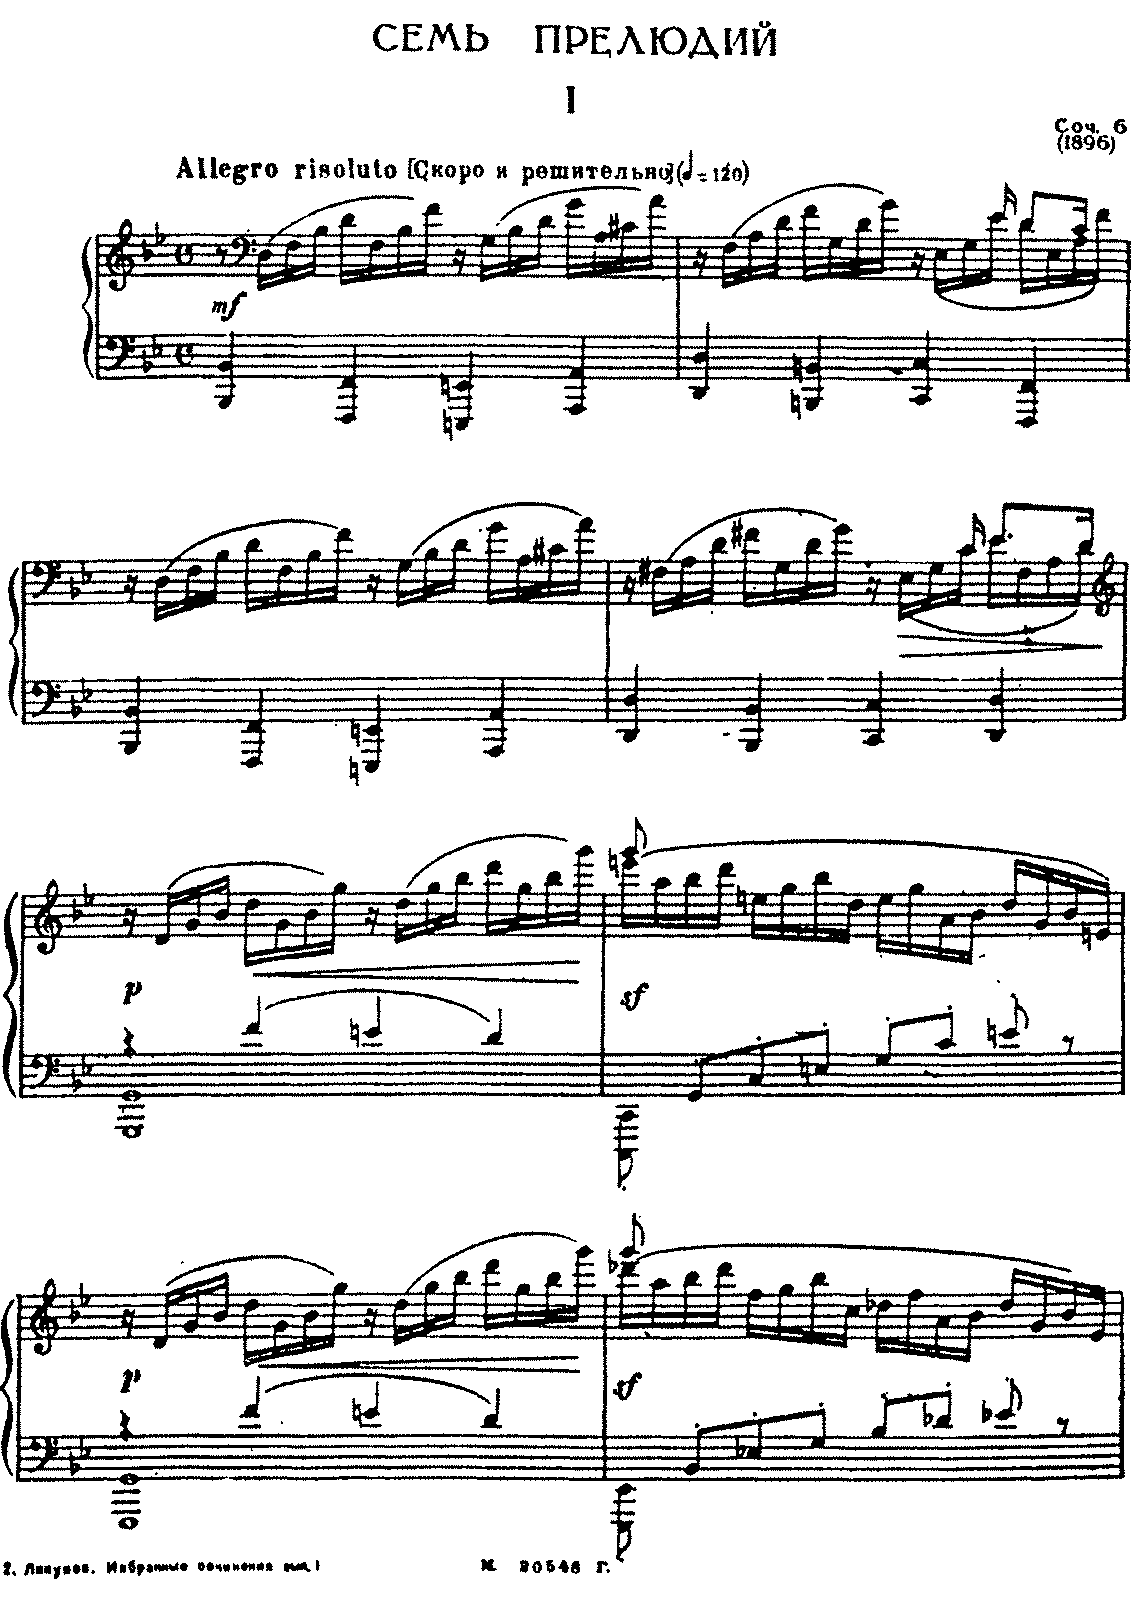 Ljapunov - Op. 06 - Seven Preludes For Piano.pdf